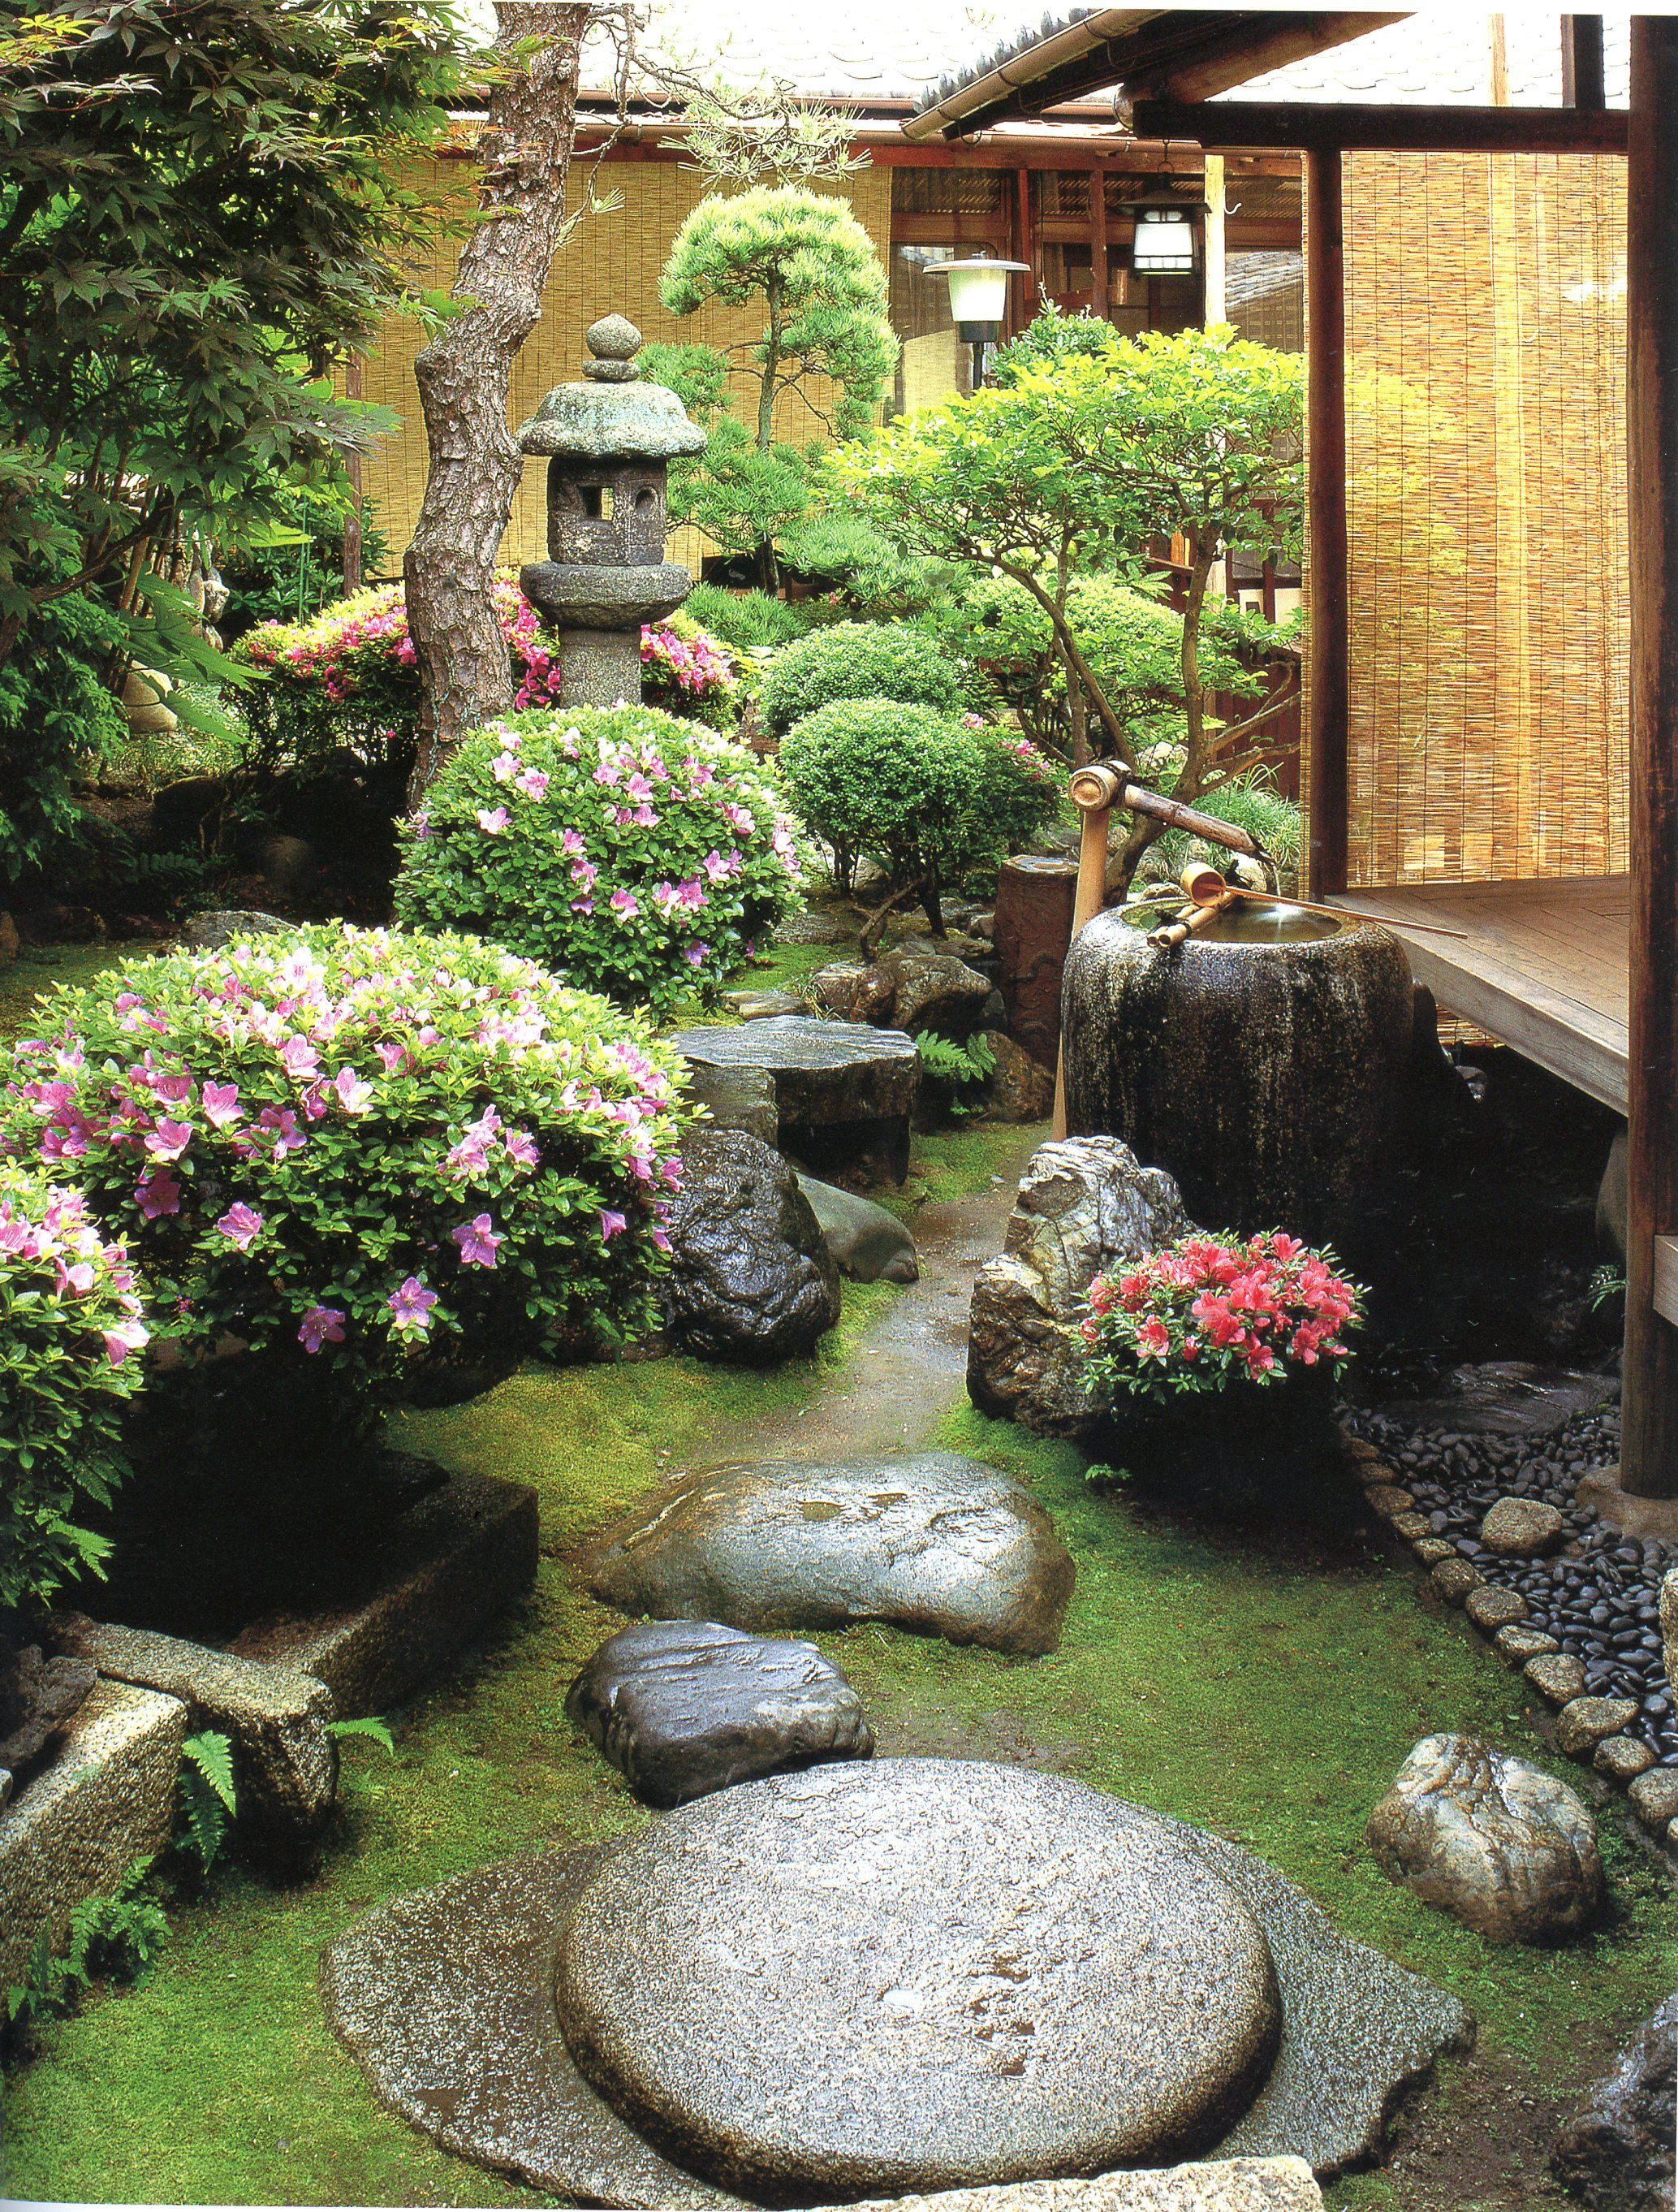 yoshida residence landscapes for small spaces japanese courtyard